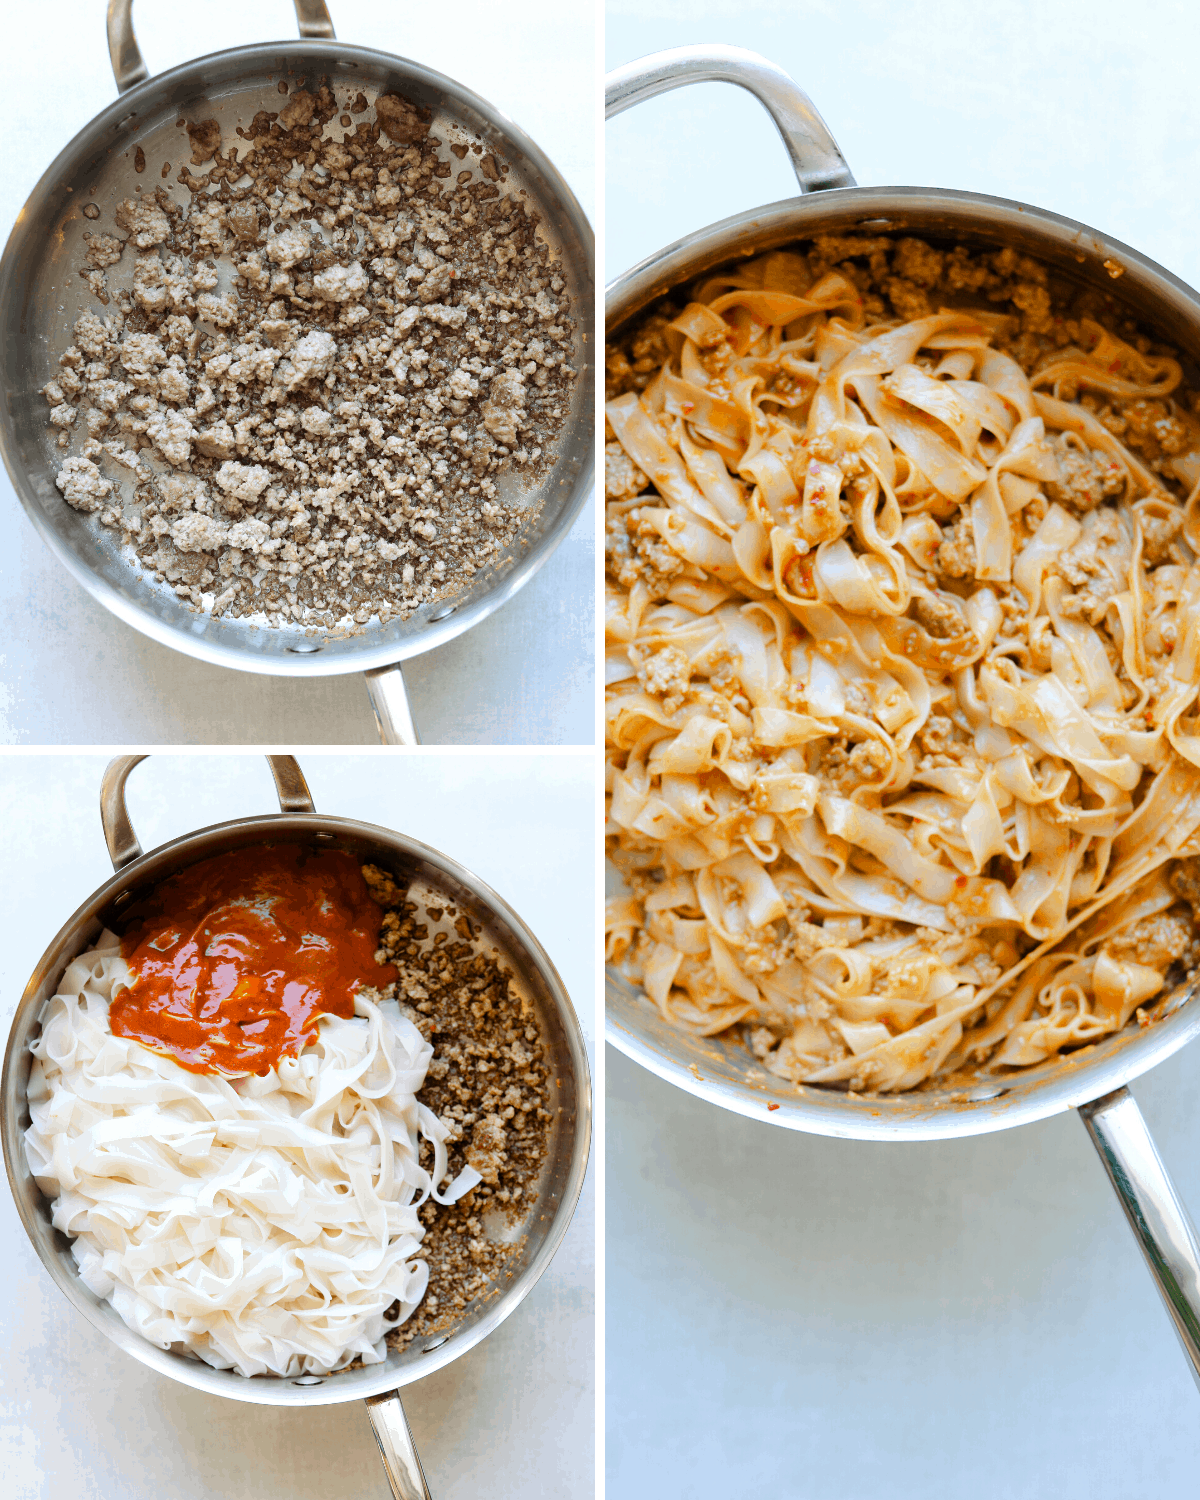 a collage of recipe steps: pork browning in a pan, pork noodles ans sauce in a pan and pork and peanut noodles in a pan.